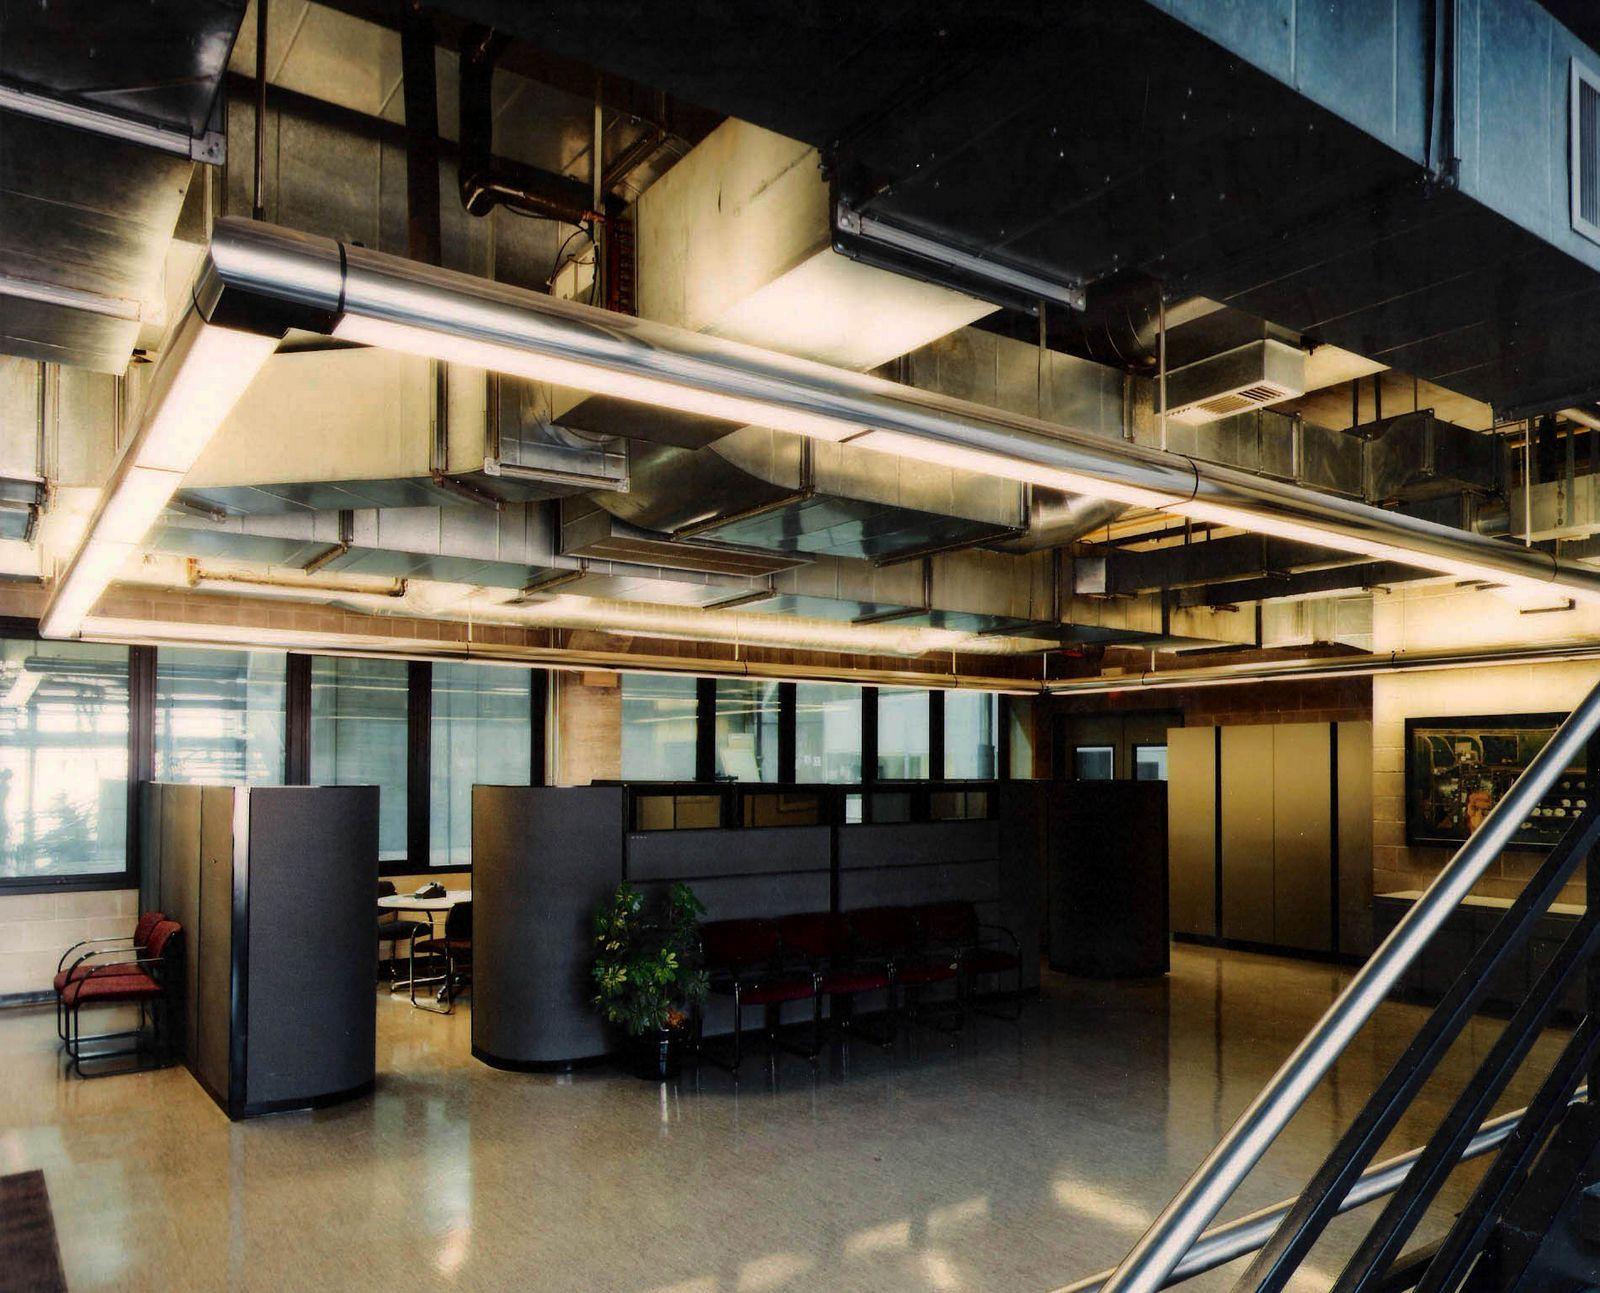 Wohndesign almirah industrial architecture interior  google search  int in